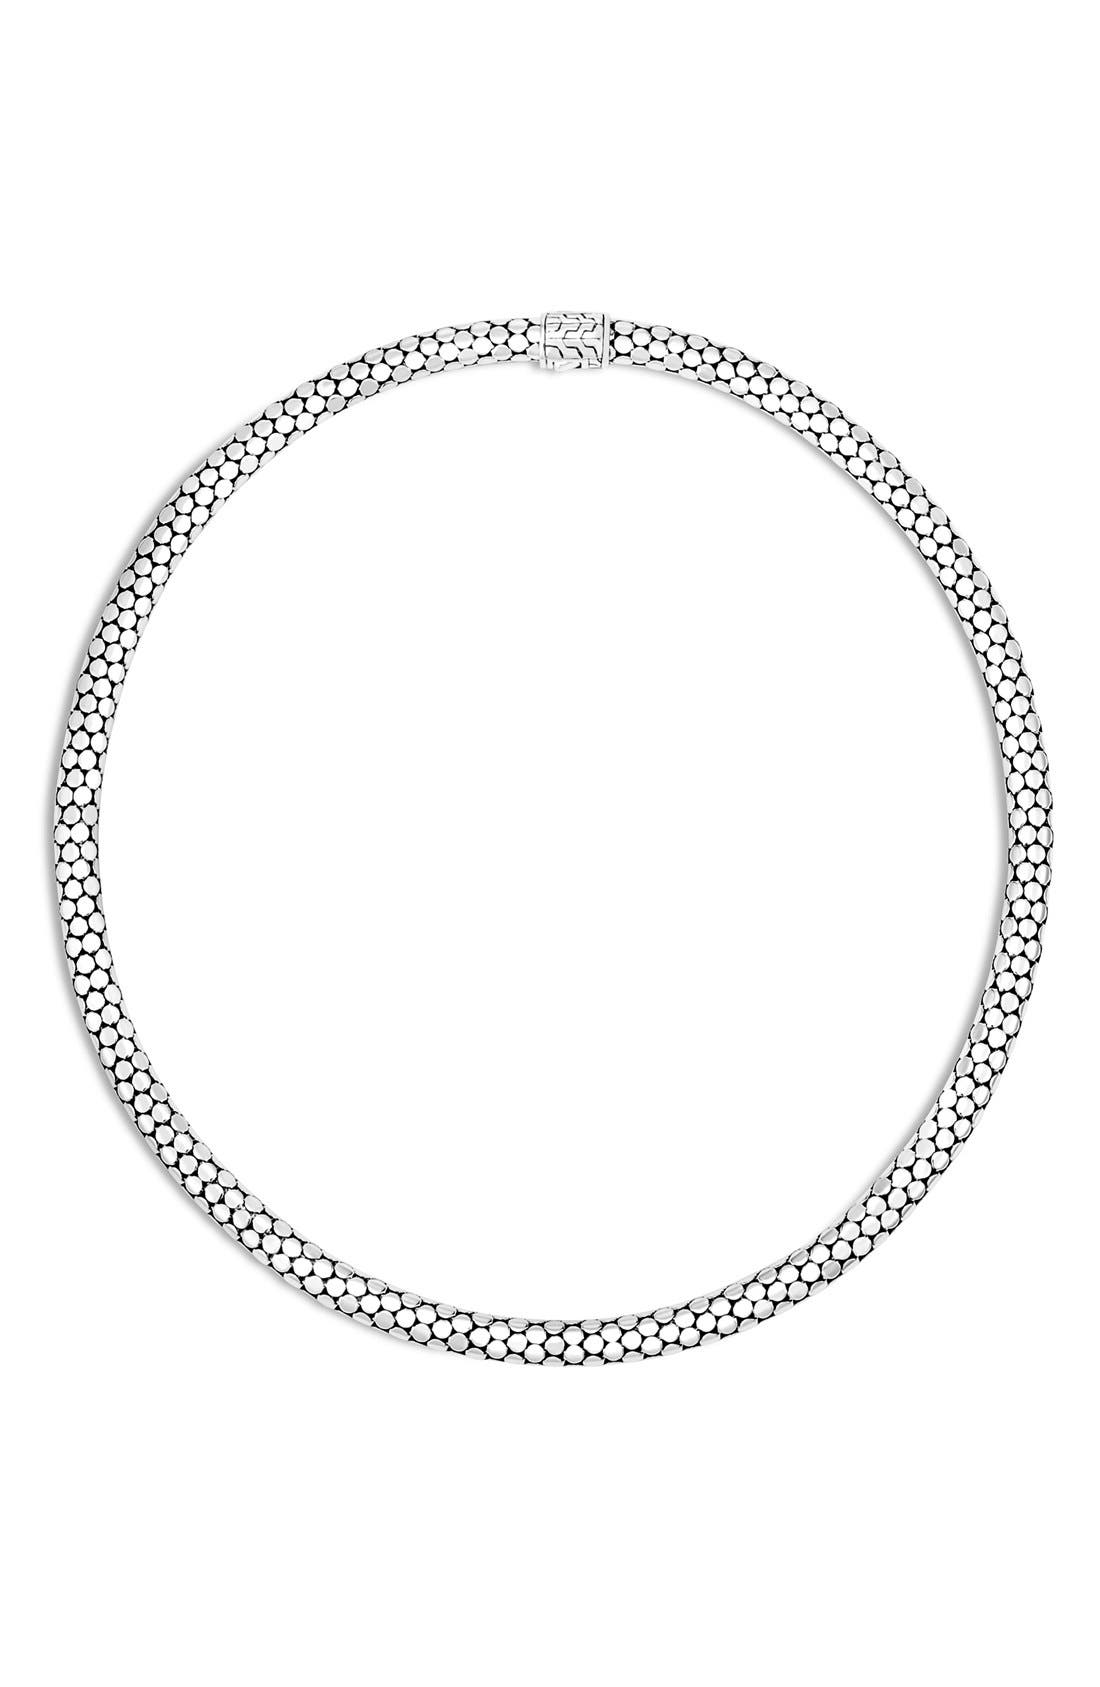 'Dot' Chain Necklace,                             Main thumbnail 1, color,                             Silver